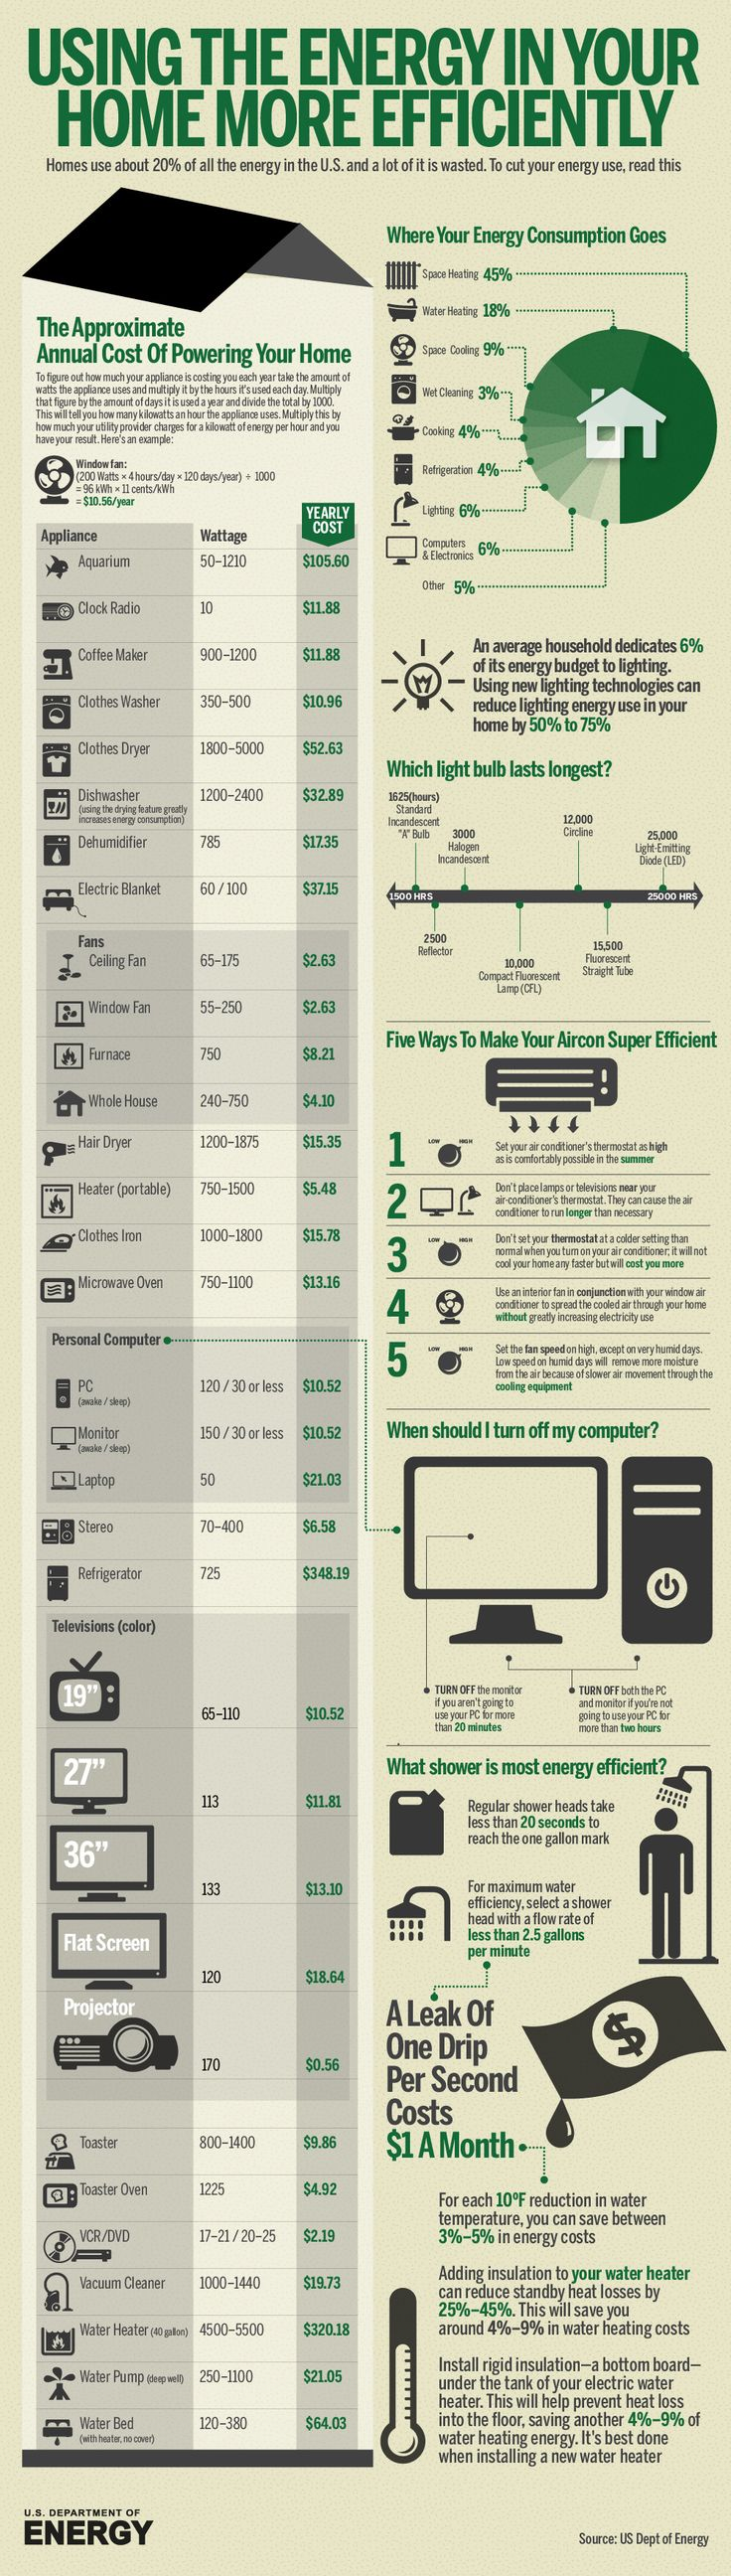 Using The Energy In Your Home More Efficiently  --- http://wegofurthr.com/infographics/large/energyIG2.jpg